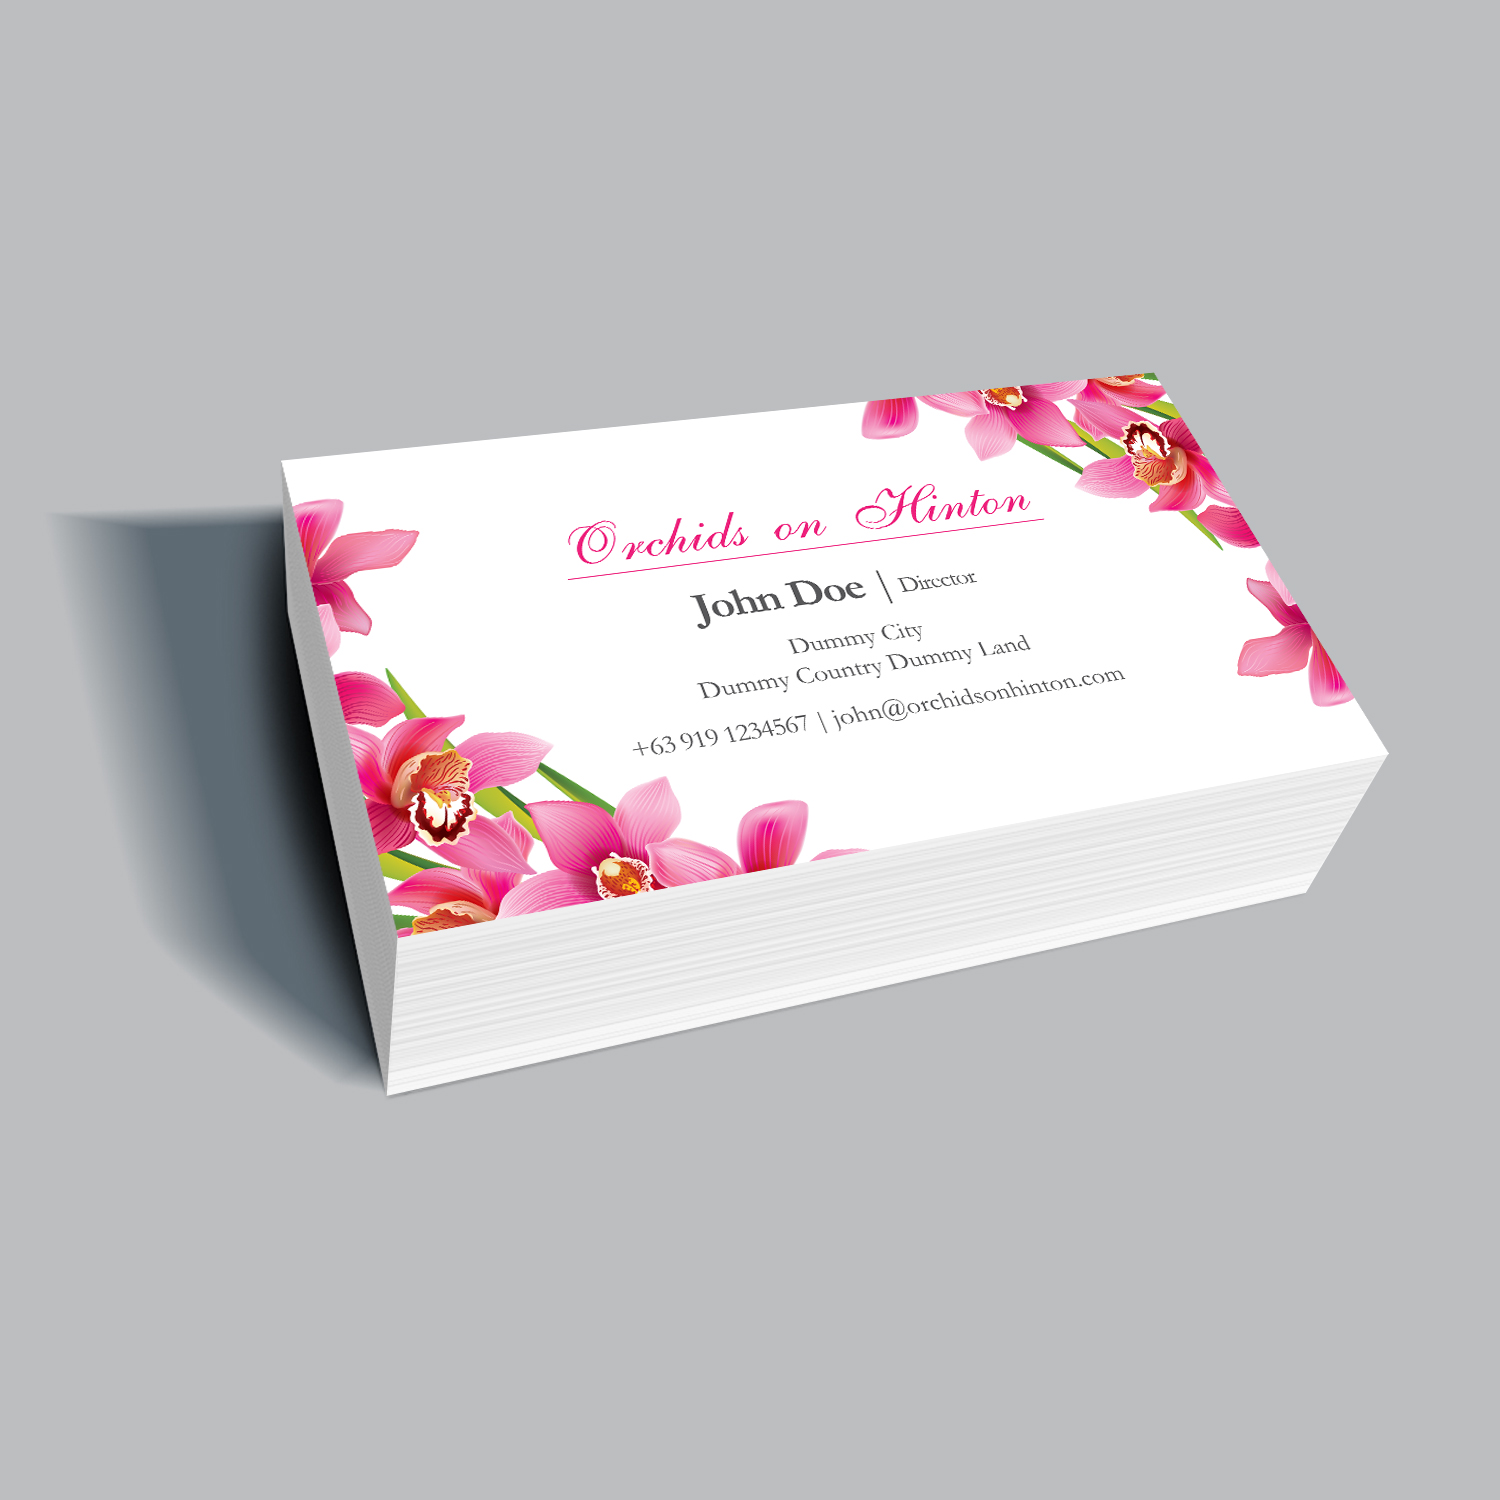 Personable, Elegant Business Card Design for Orchids on Hinton by ...